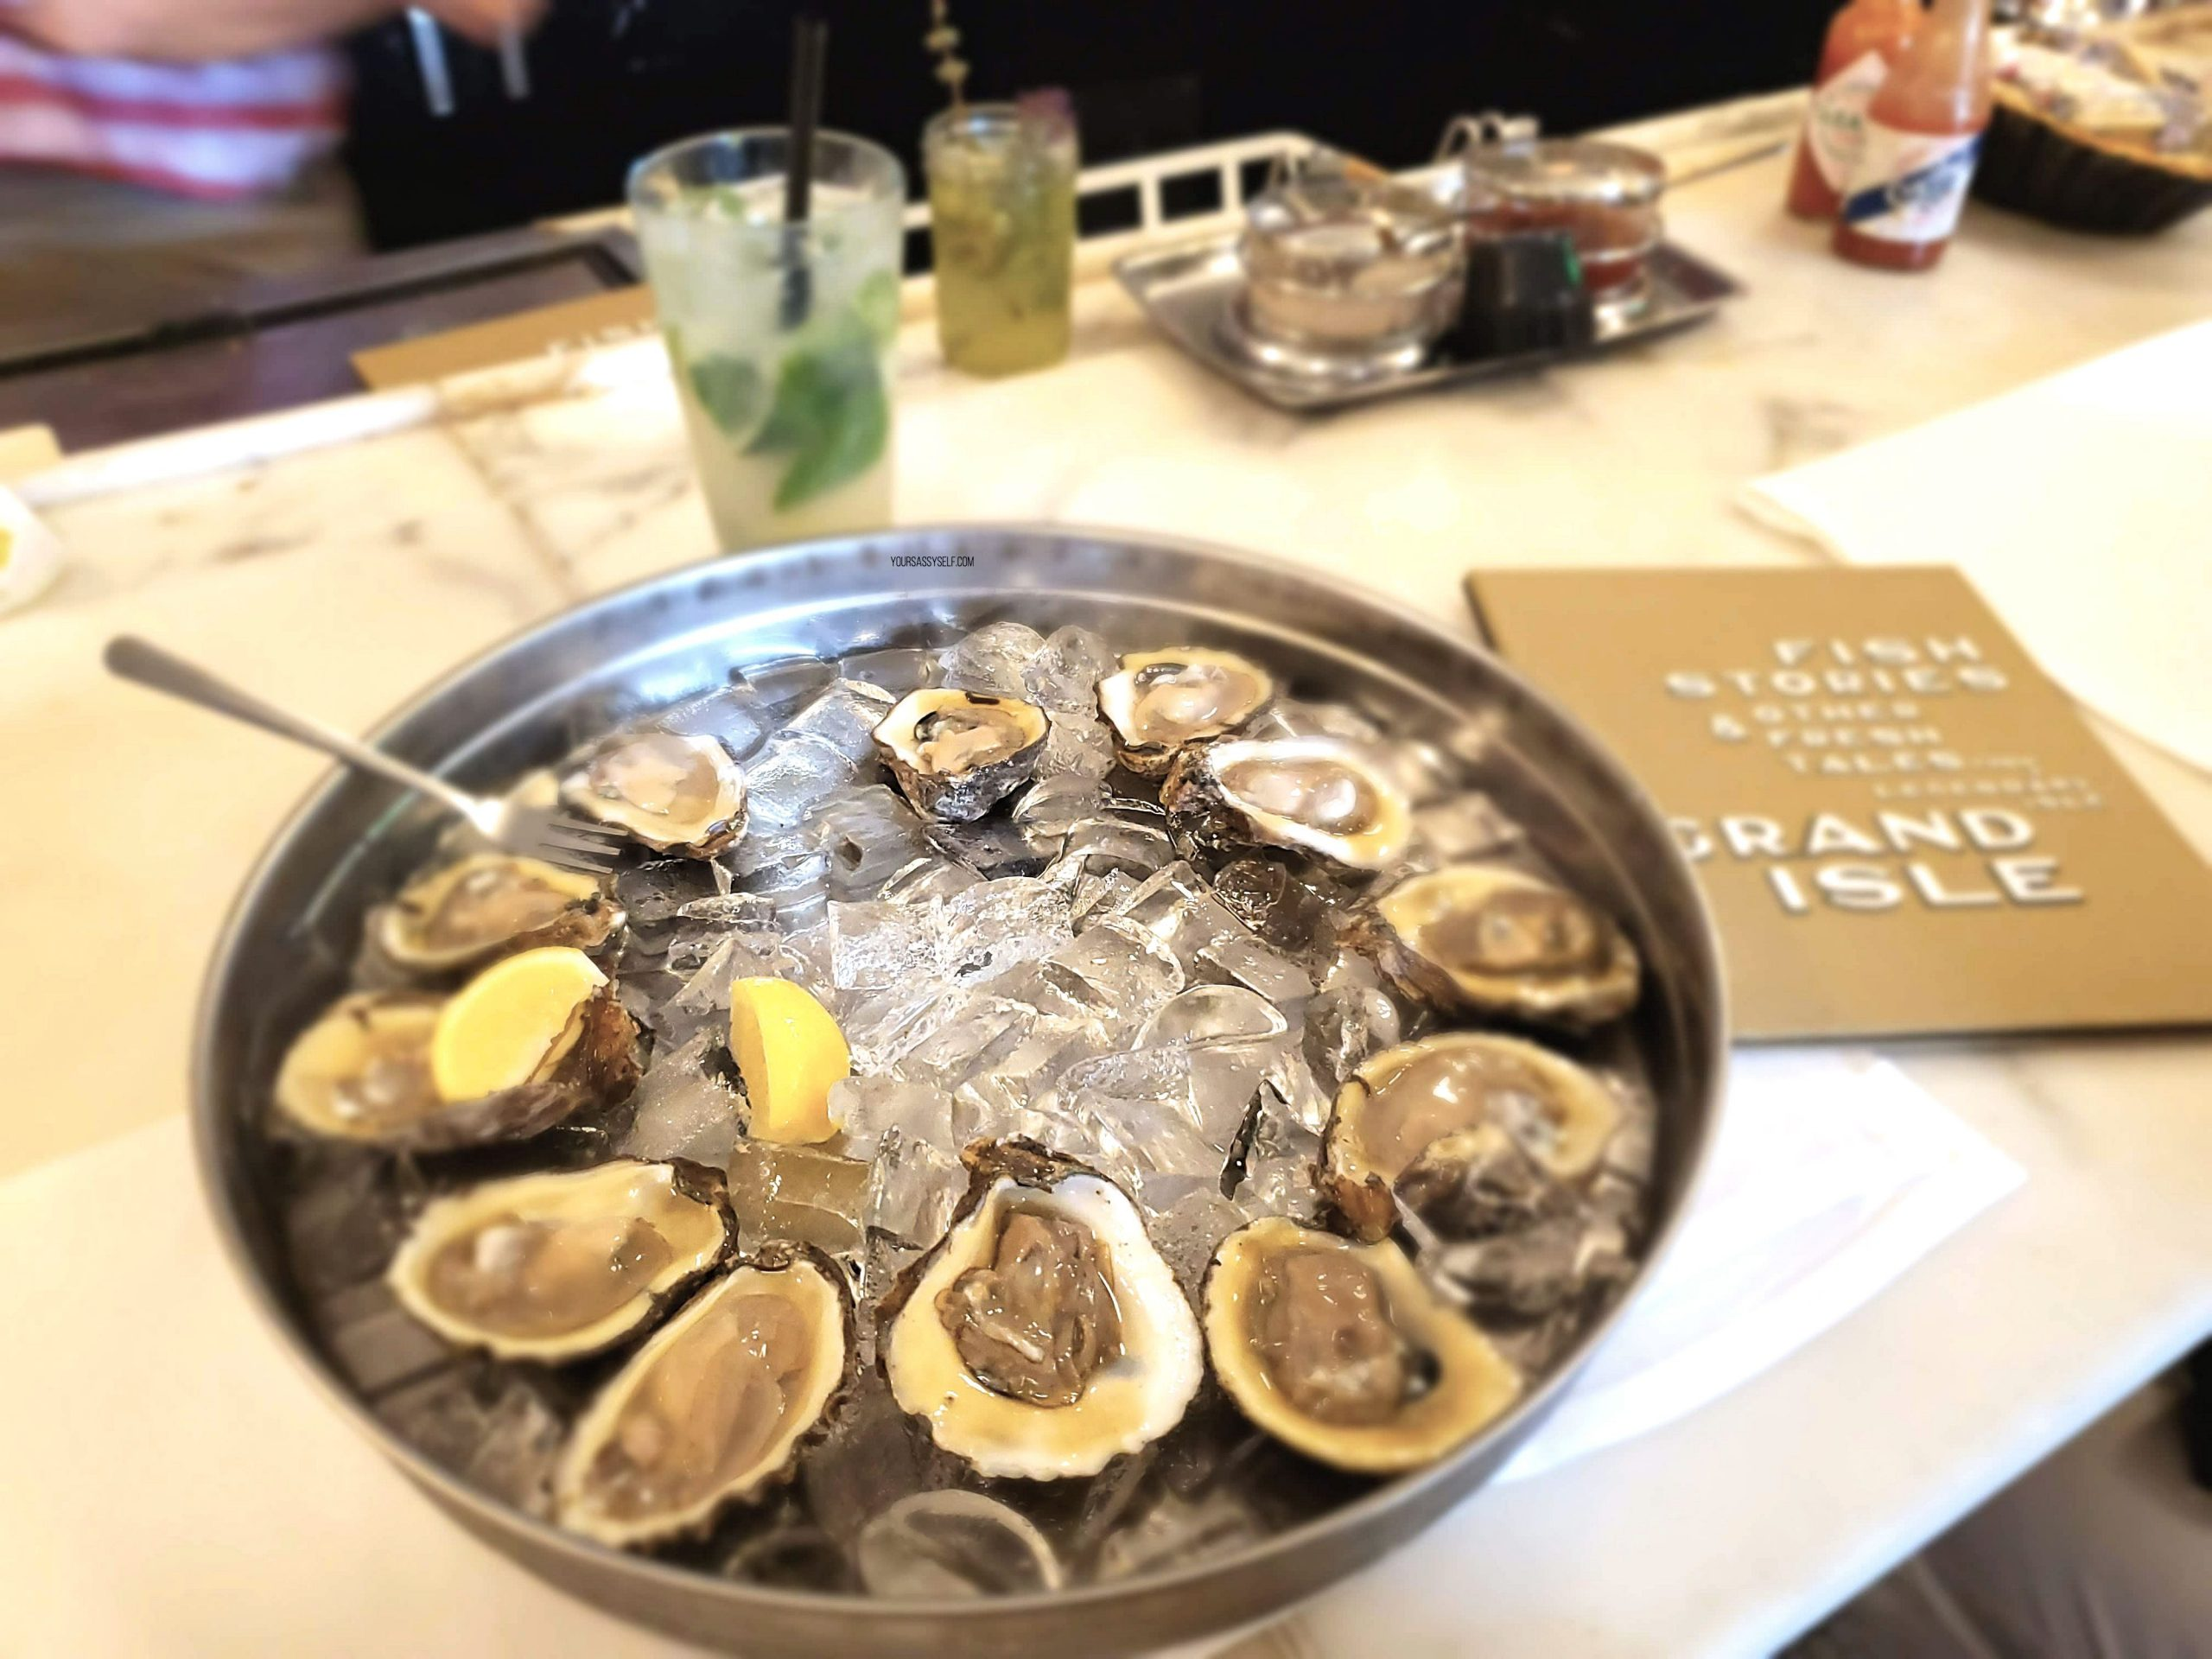 Oysters on the half shell - yoursassyself.com